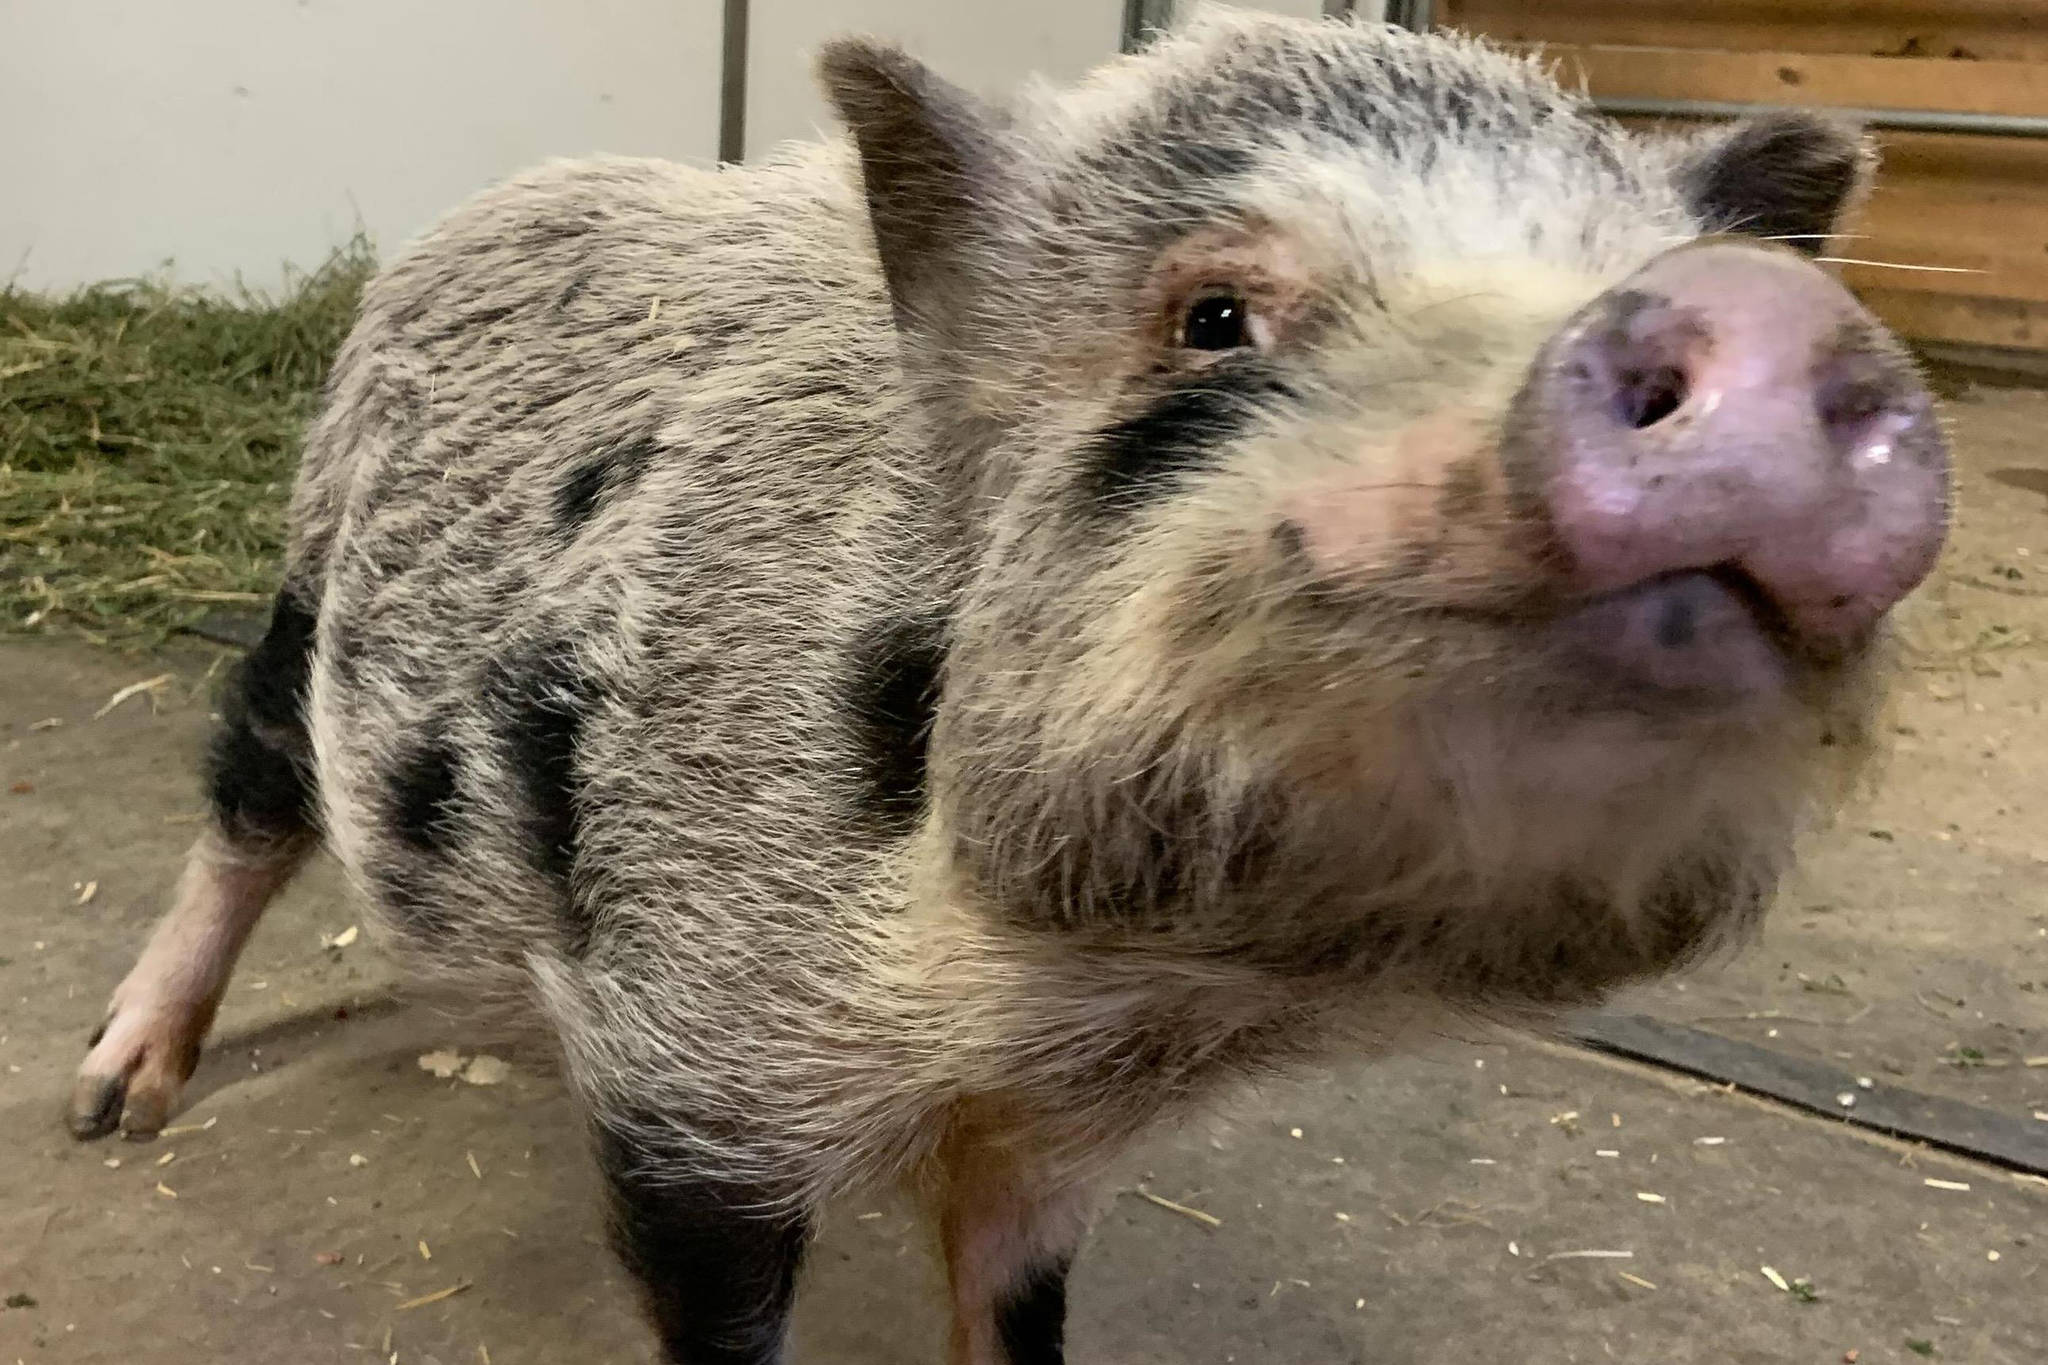 Marigold the pot-bellied pig was surrendered after a cruelty investigation in Chilliwack and is living at the BC SPCA's Surrey Good Shepherd Barn. (Submitted)